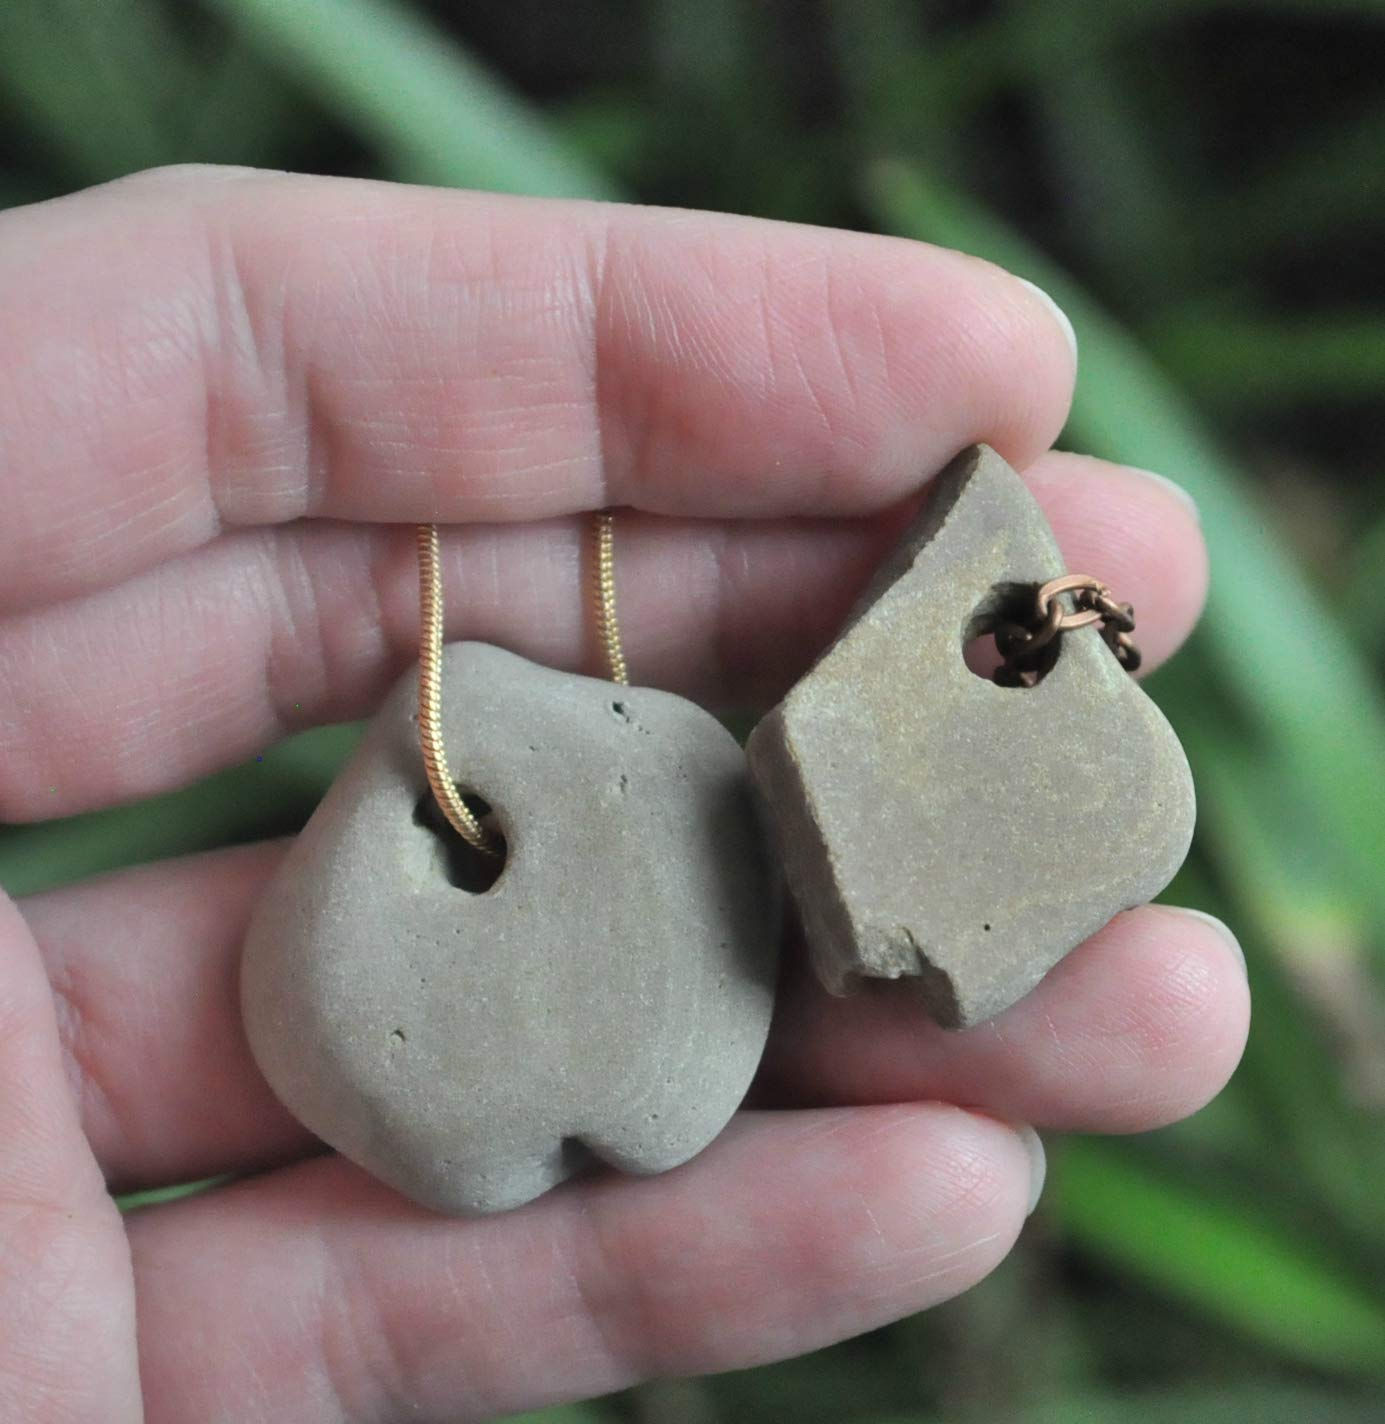 Amazon Com Natural Hag Stone Necklace From Lake Michigan Wishing Stone Adder Stone Witch Stone Holey Stone Odin Stone Minimalist Jewelry Handmade She is voiced by sian thomas. natural hag stone necklace from lake michigan wishing stone adder stone witch stone holey stone odin stone minimalist jewelry